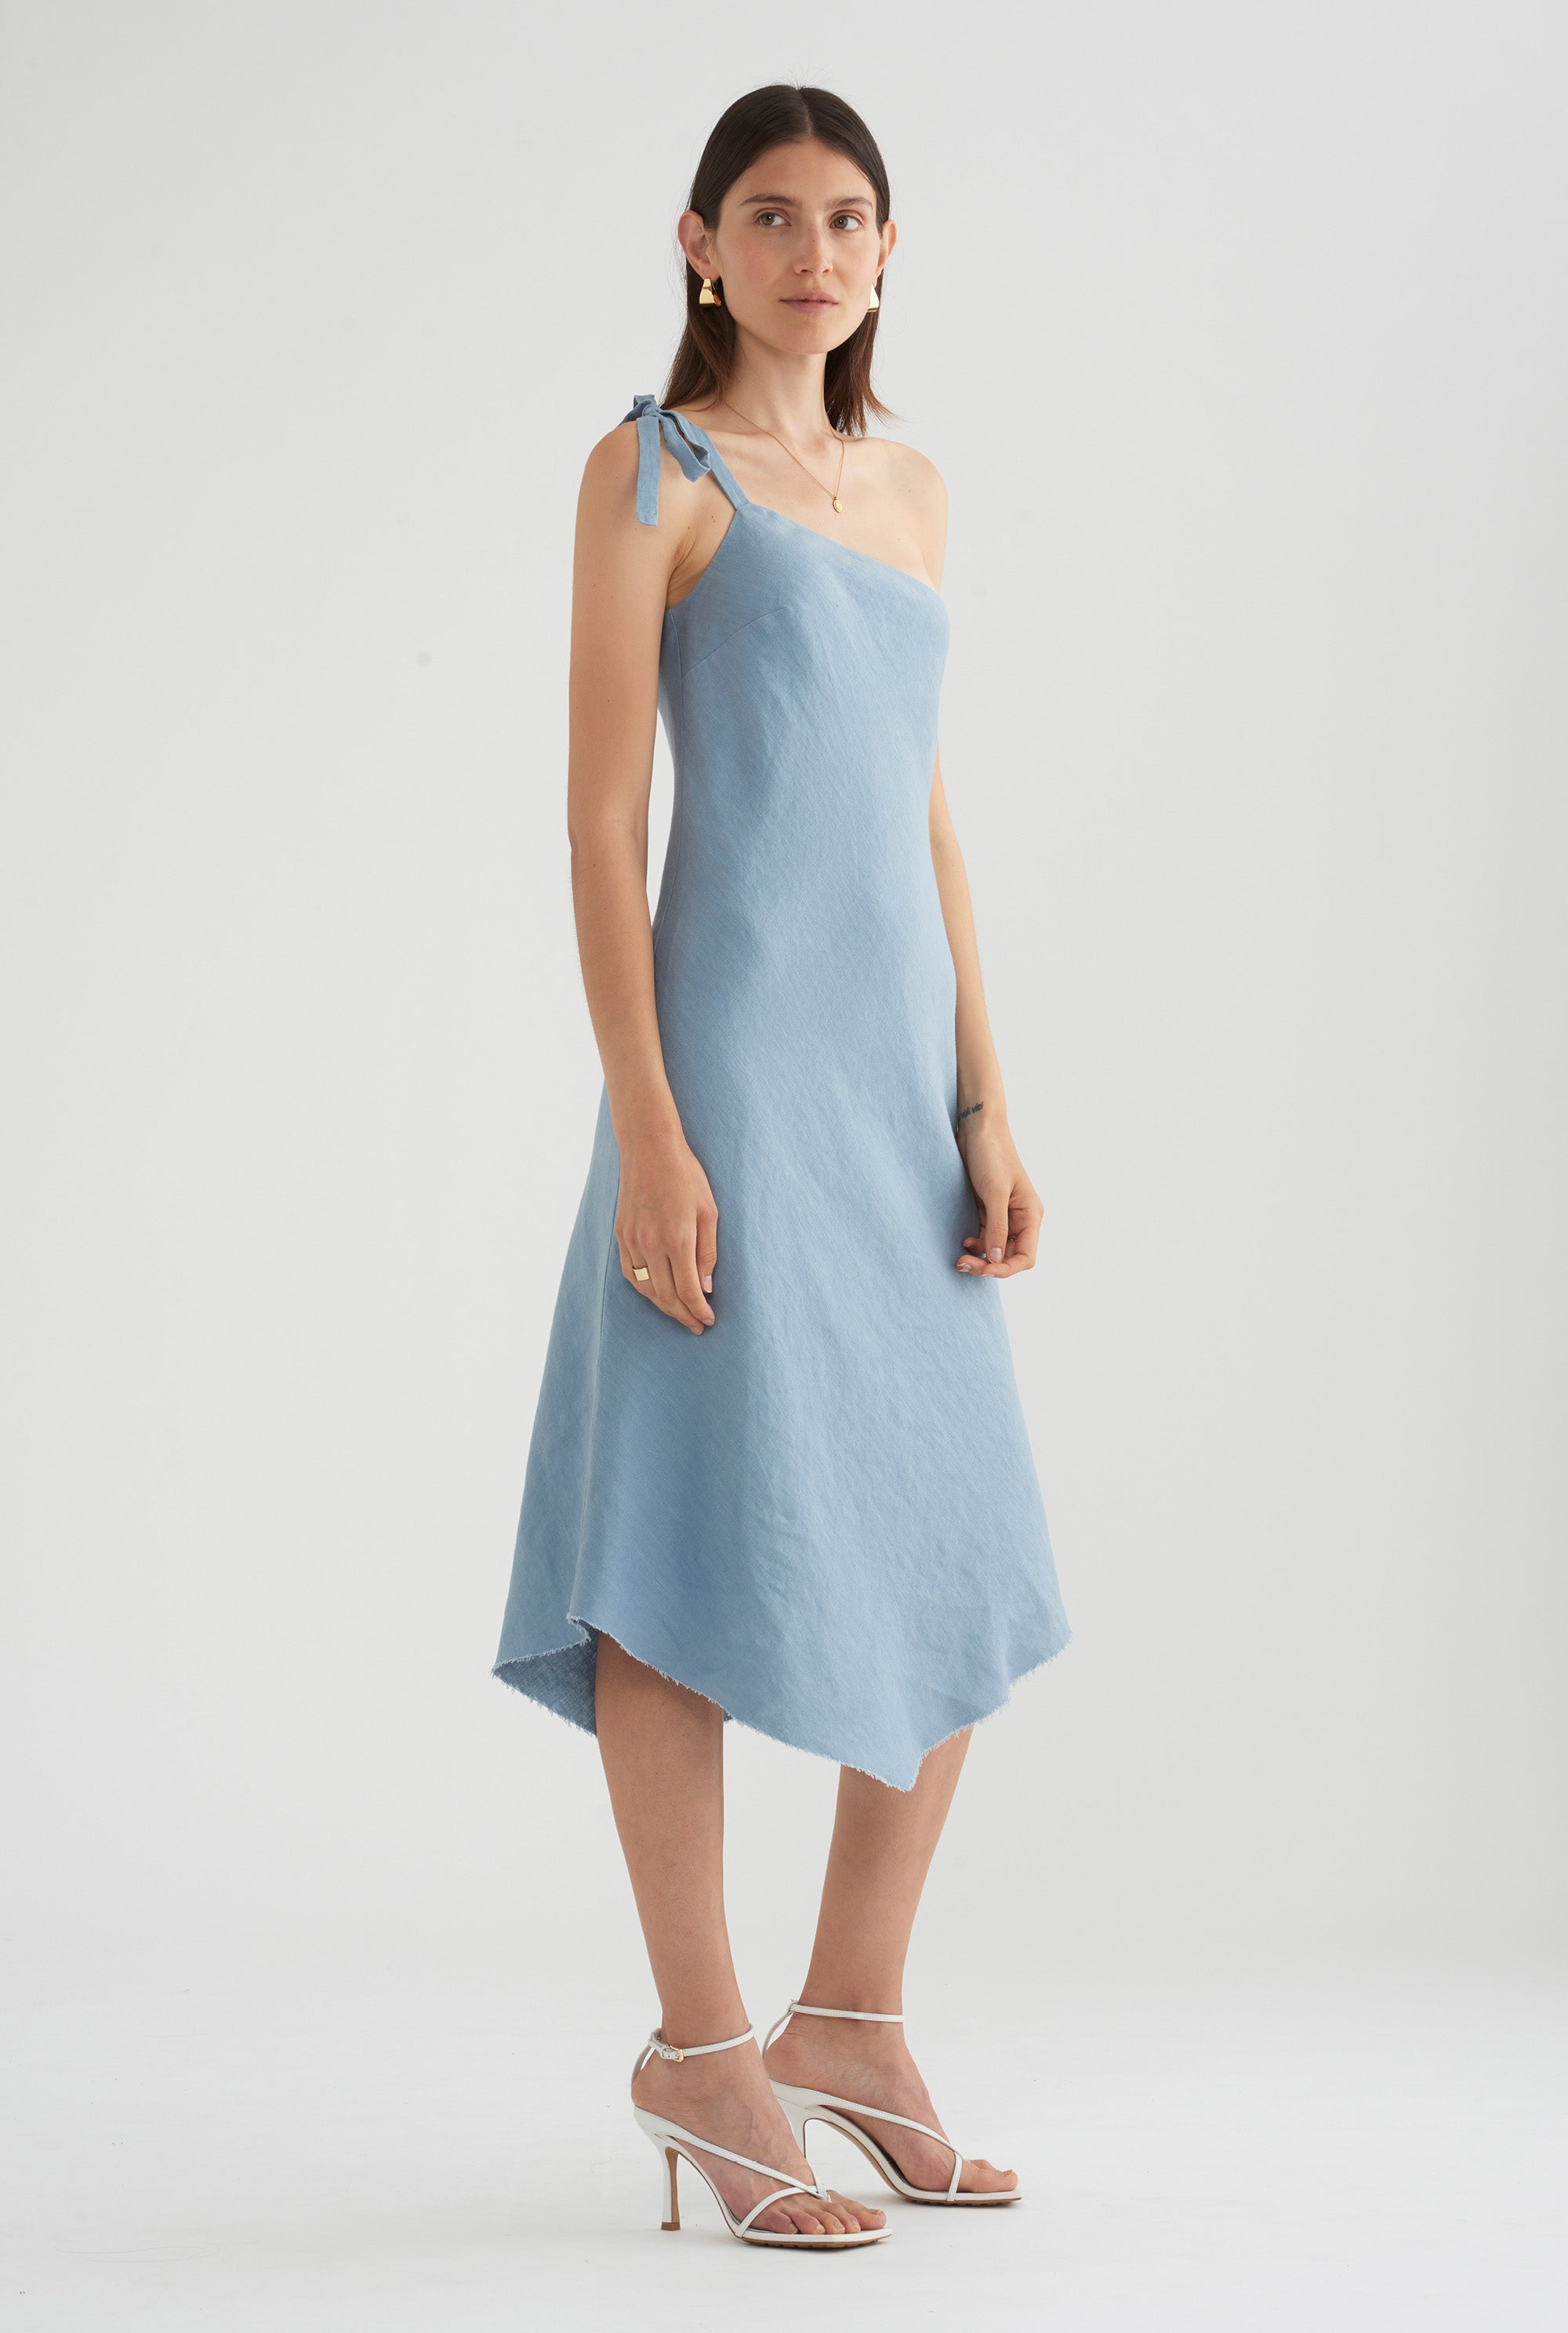 One Shoulder Tie Dress - Dusty Blue